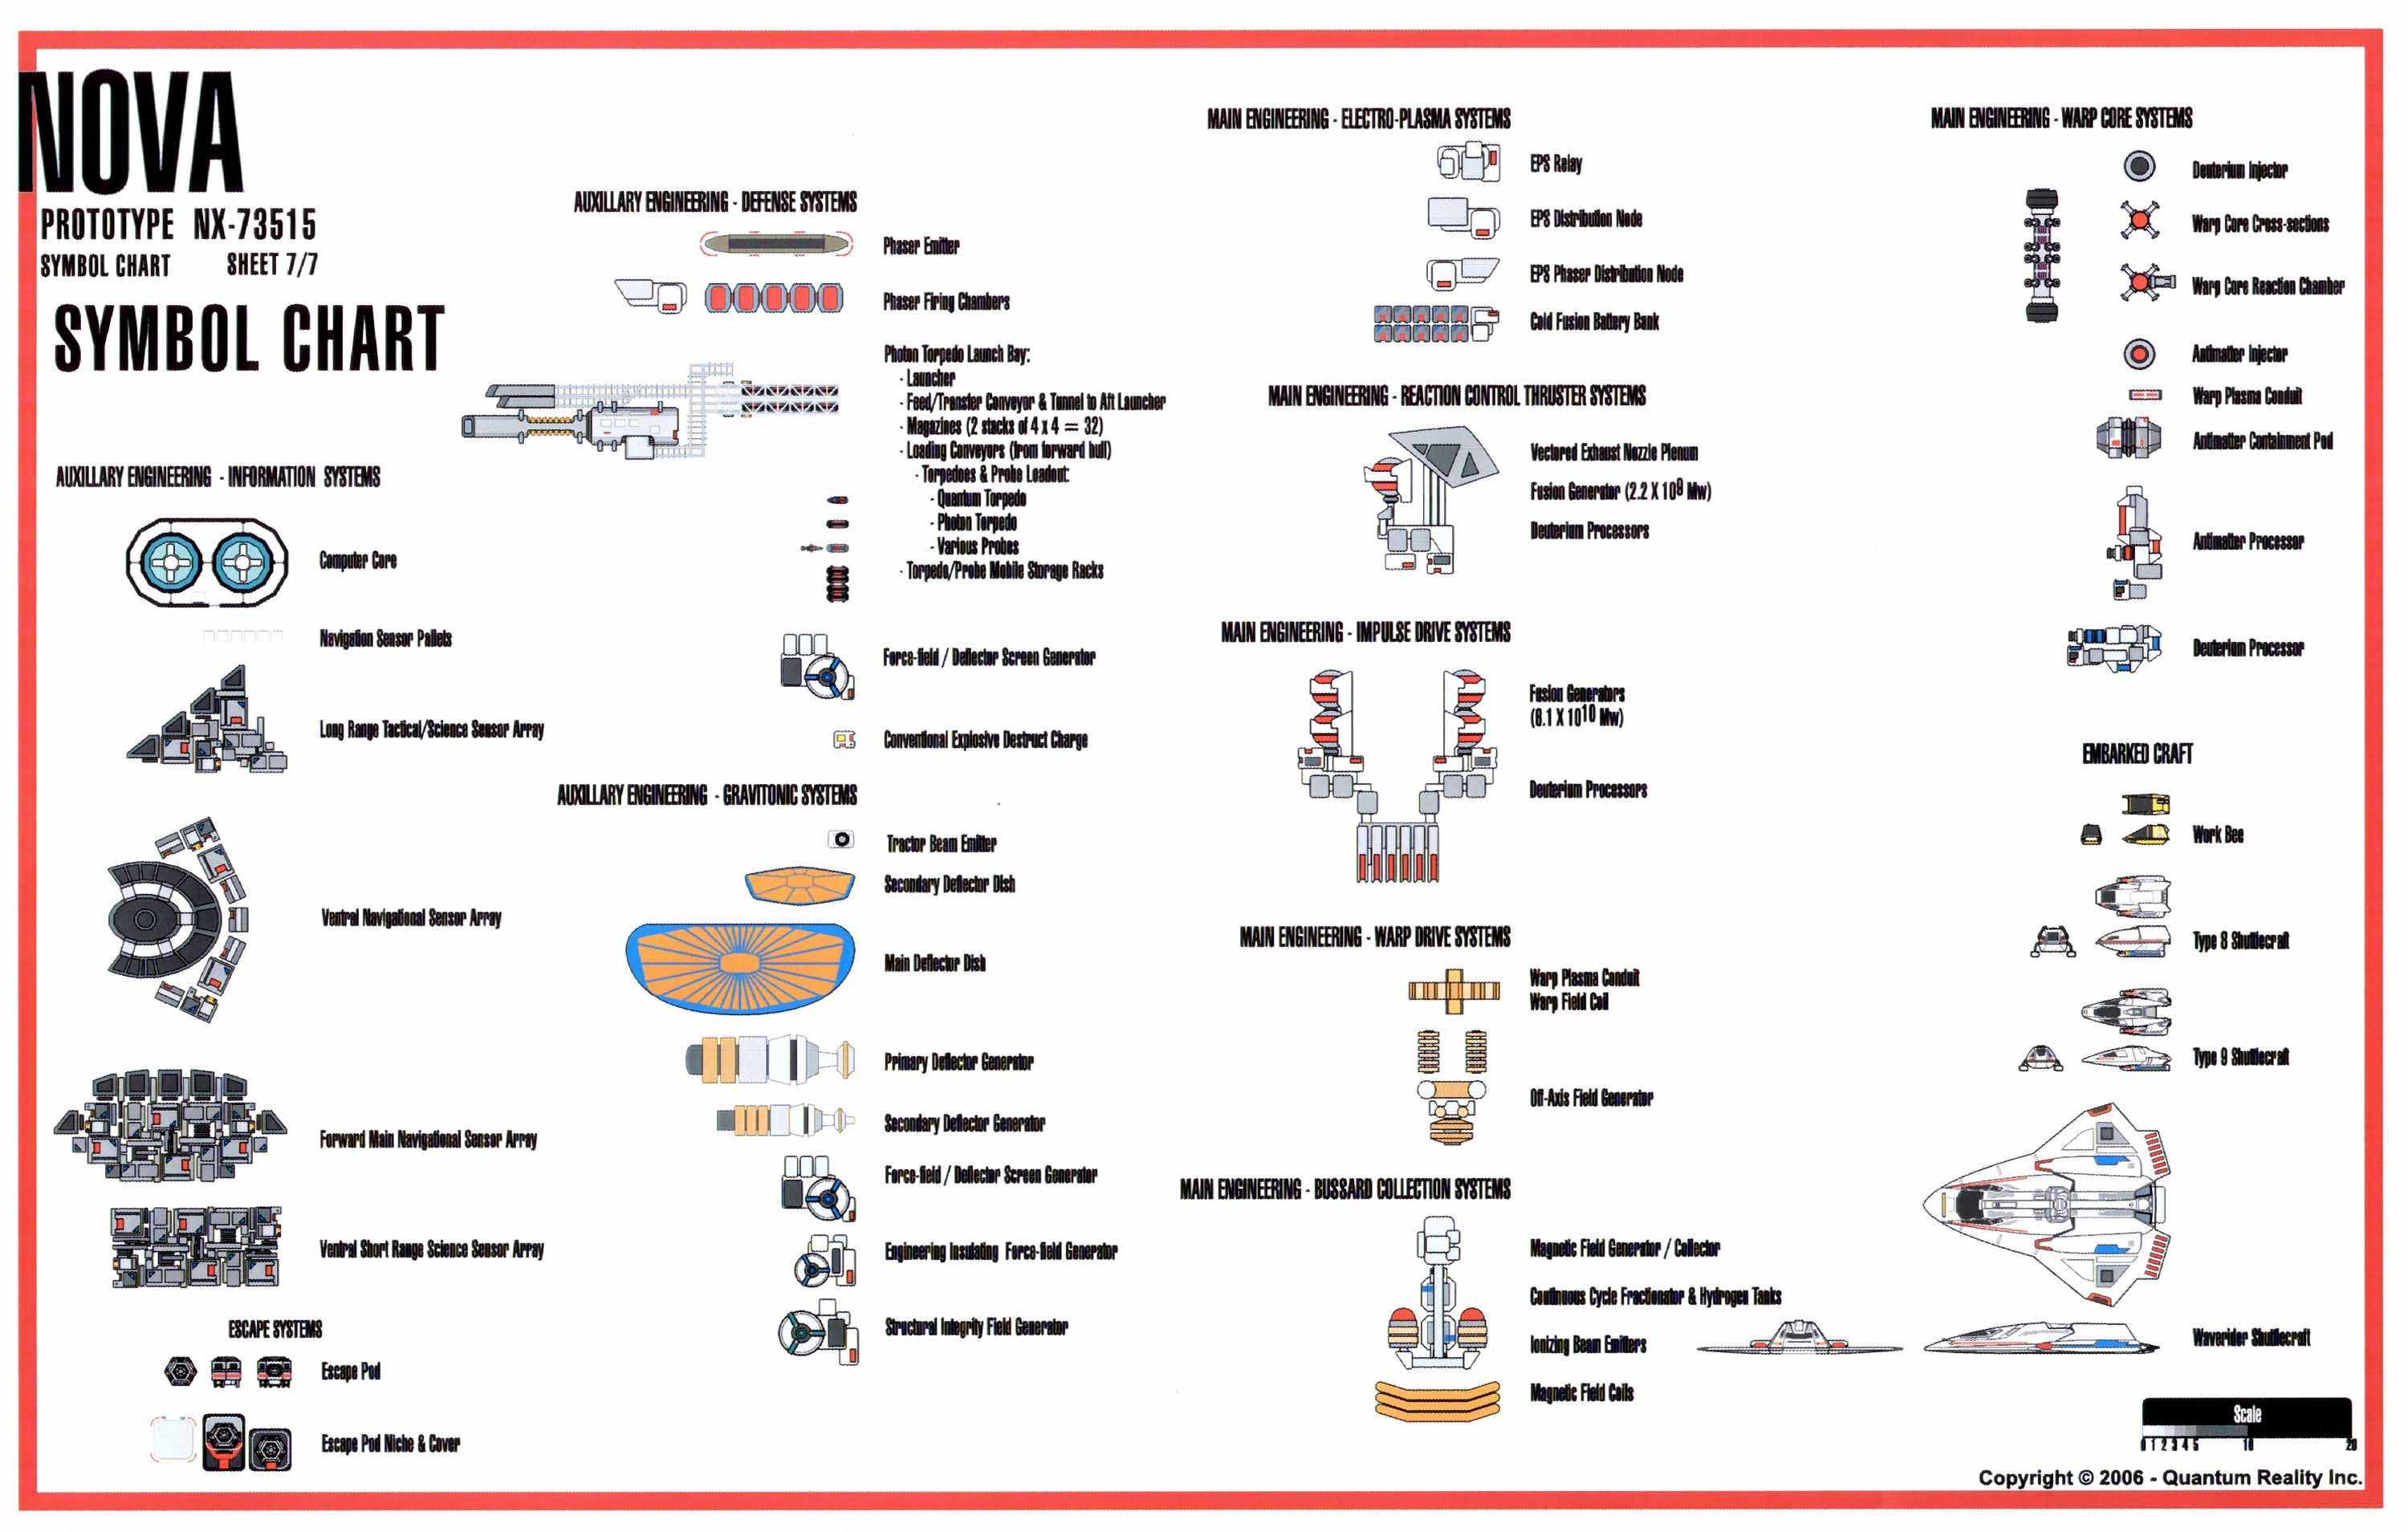 Symbols for starship deckplans google search starship deck px star trek pic free hd widescreen by greenlee fletcher malvernweather Images